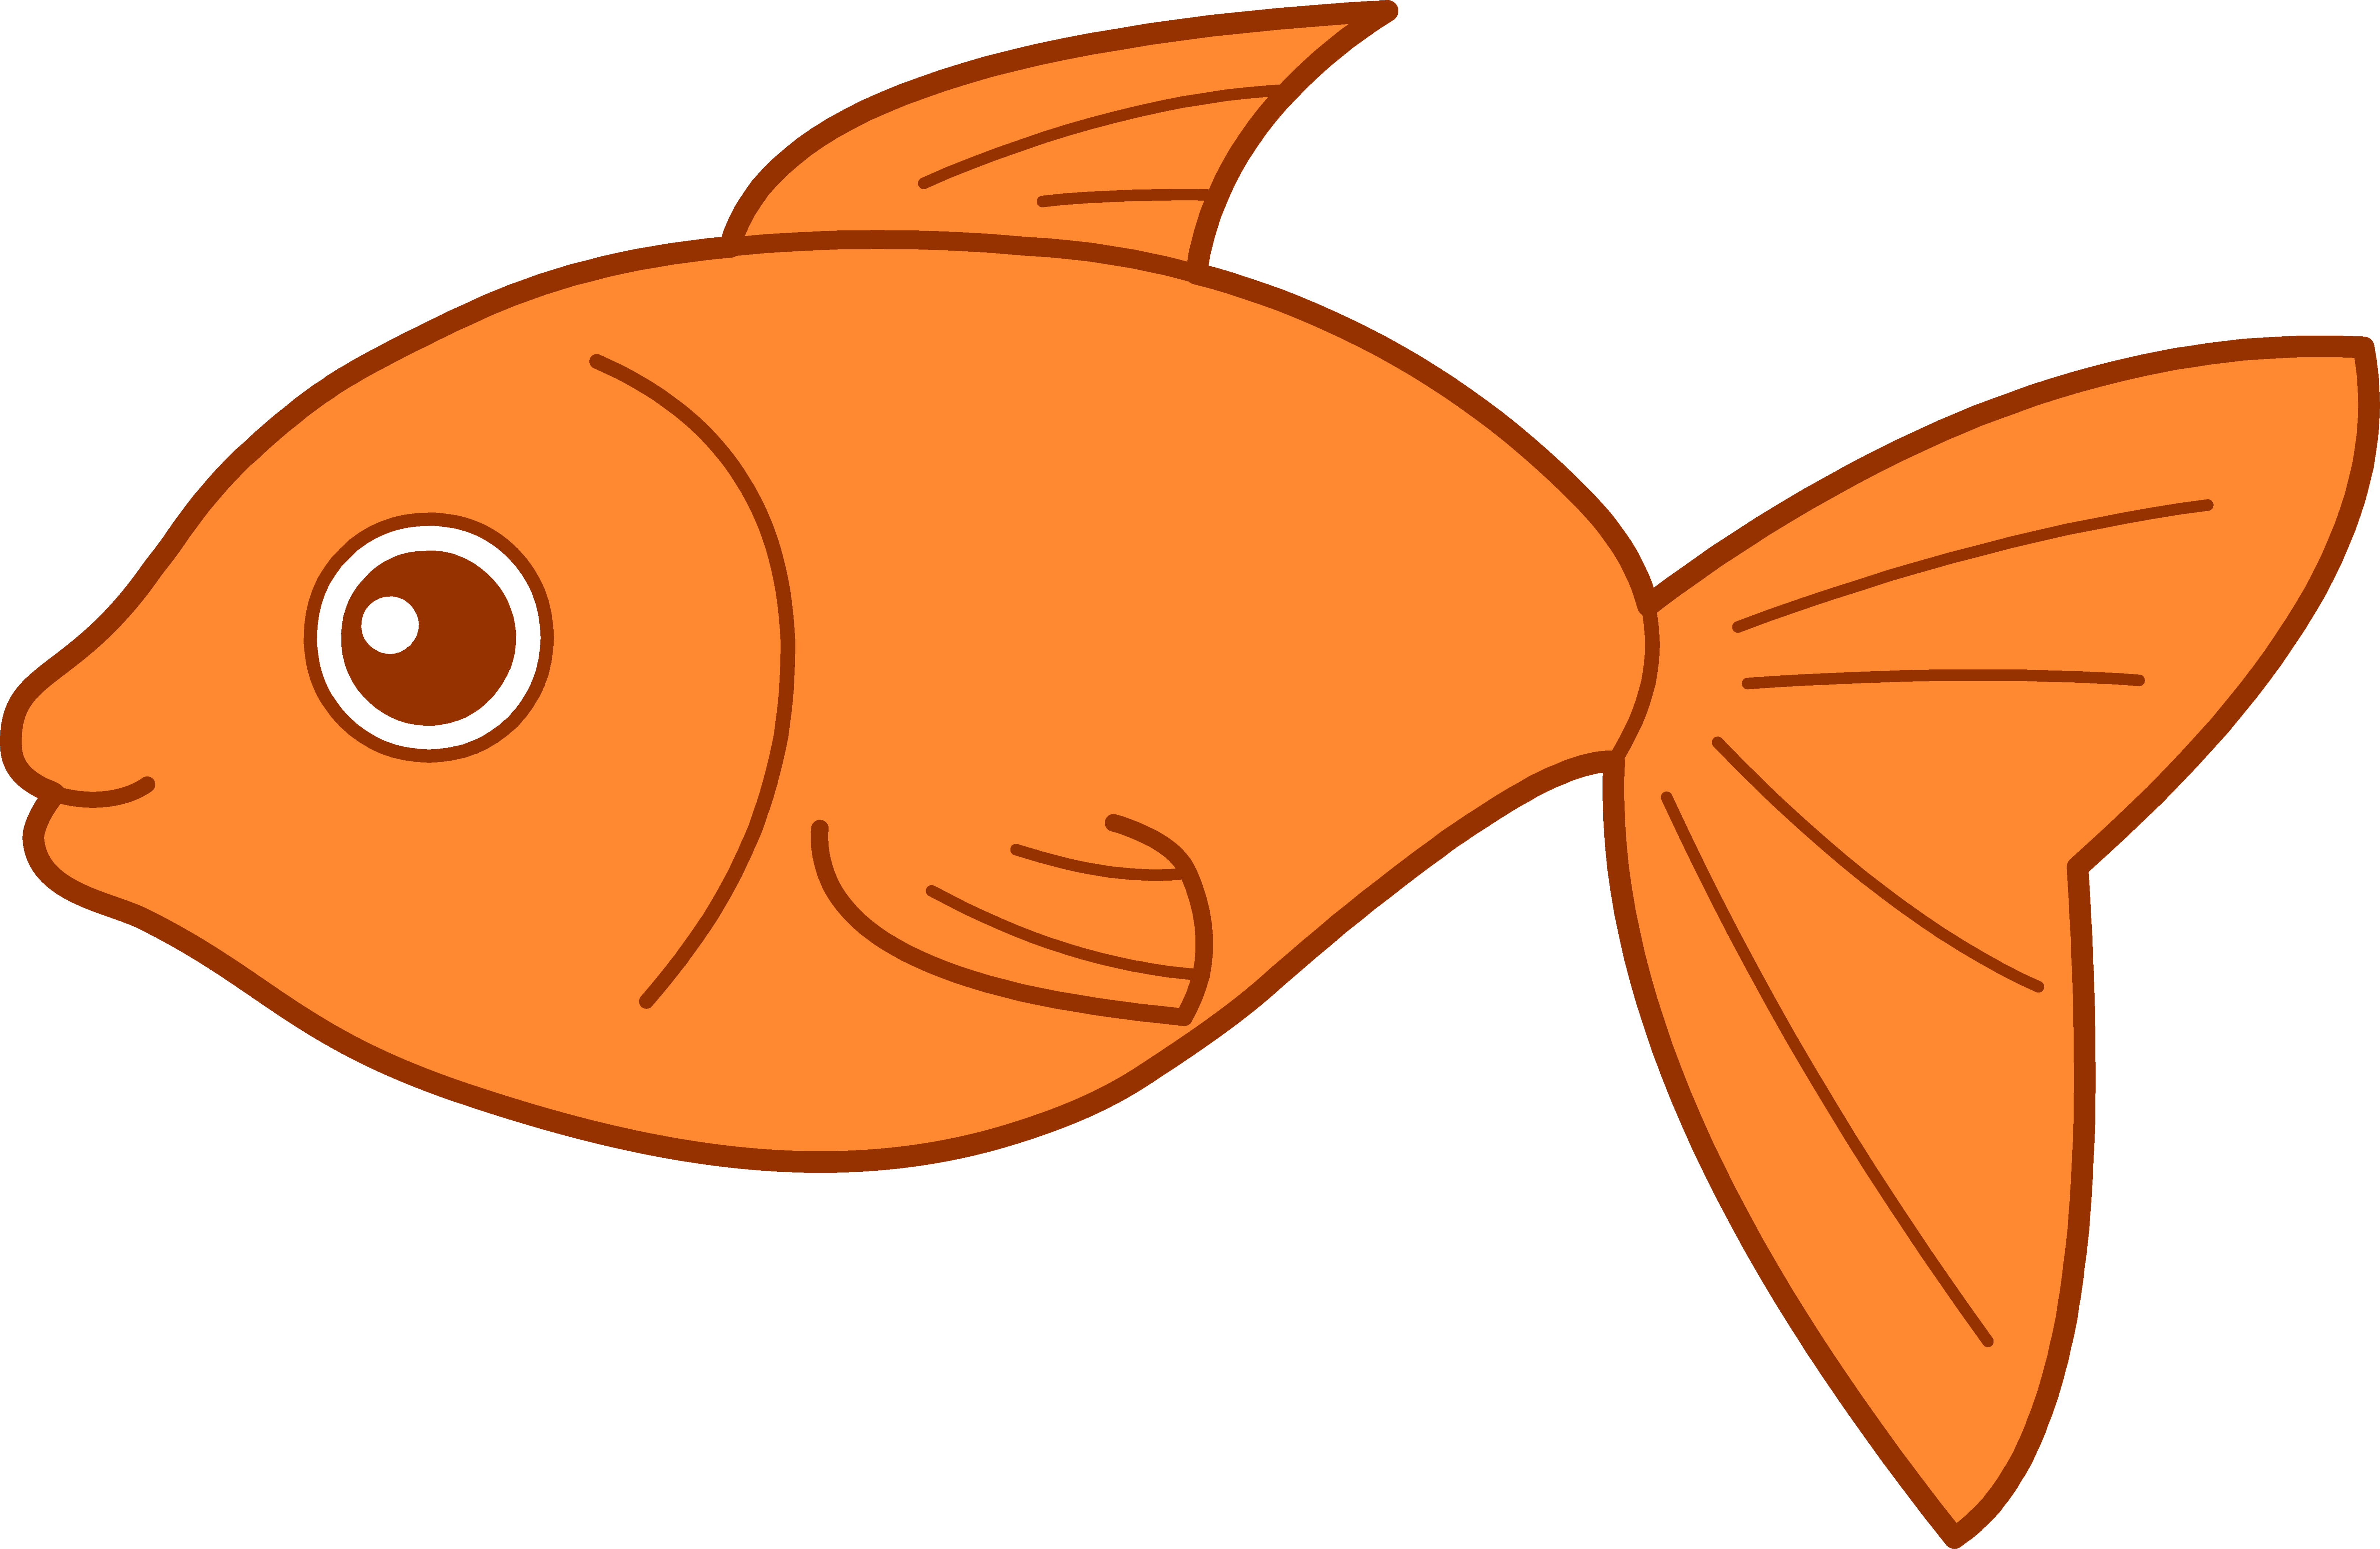 Pond fish clipart clip royalty free library Koi Fish Clipart at GetDrawings.com | Free for personal use Koi Fish ... clip royalty free library